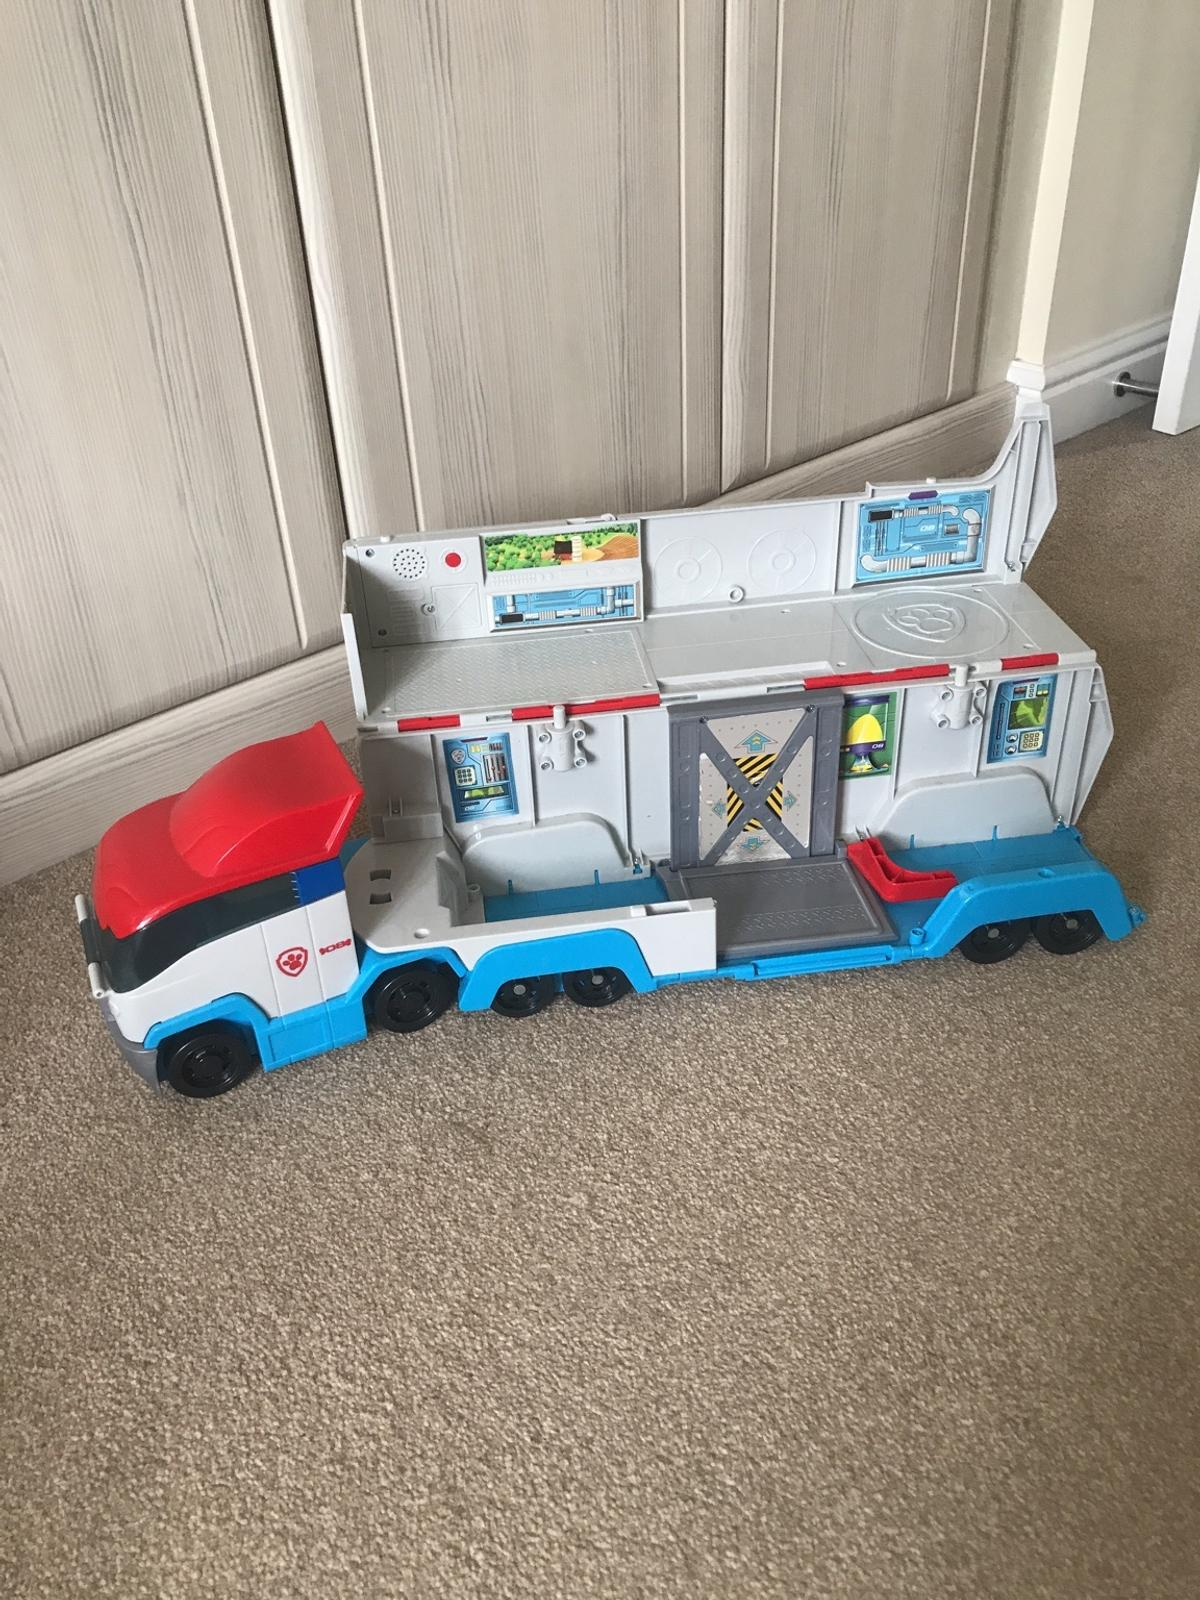 Paw Patroller in good condition ( 70cm long) No figures or cars included.